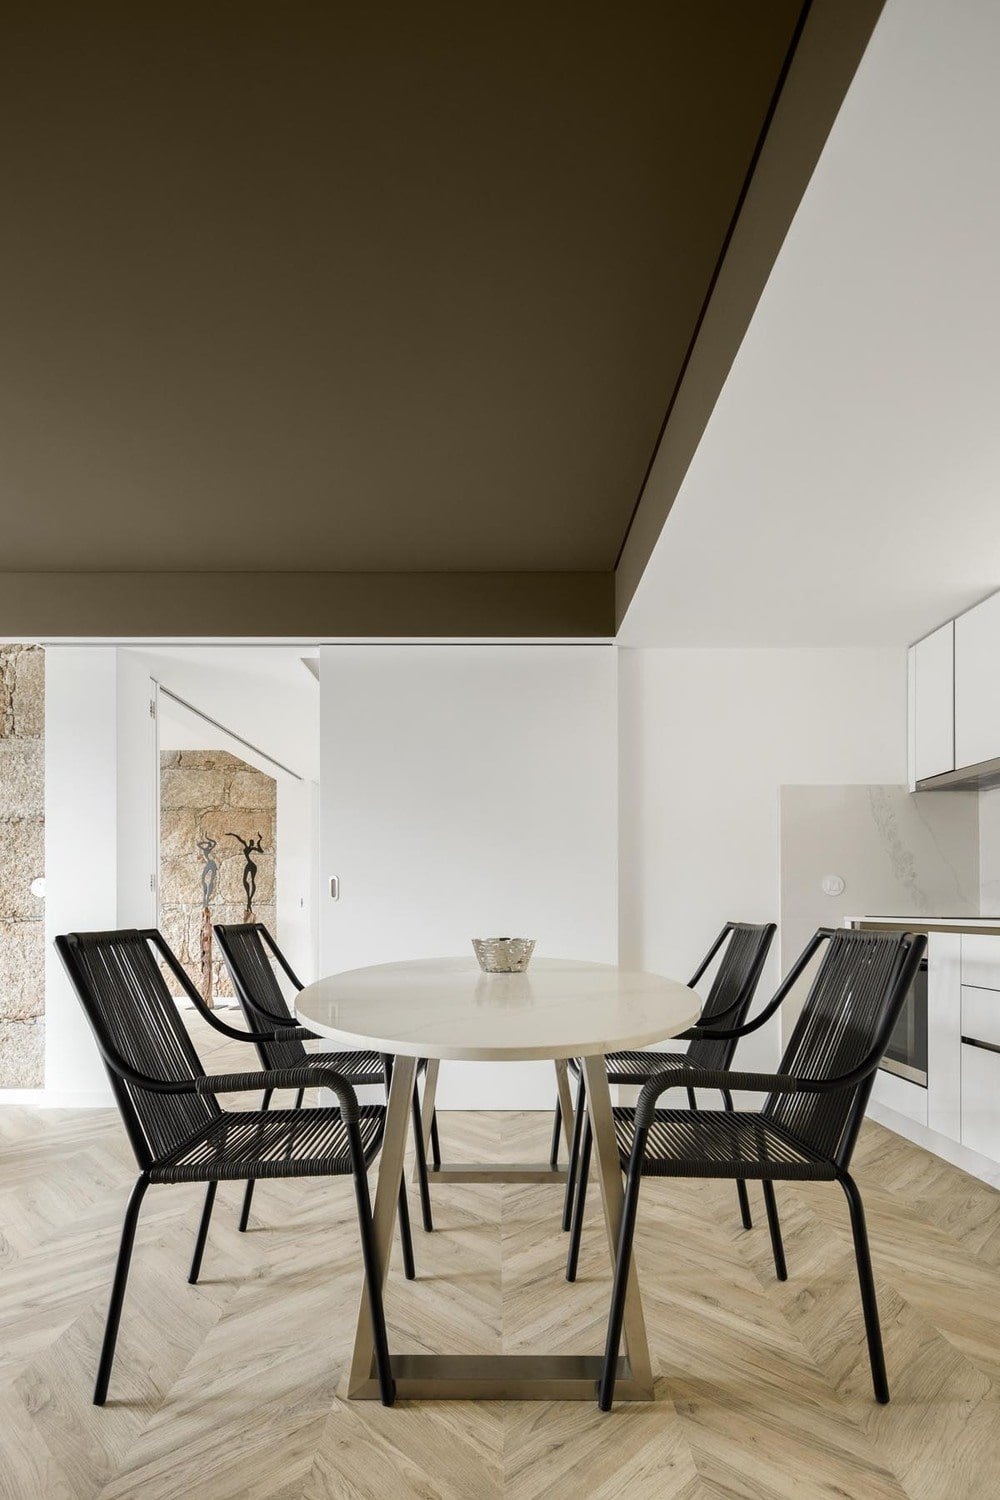 On the side of this sliding door is the dining area that has a white dining table contrasted by the black chairs surrounding it.